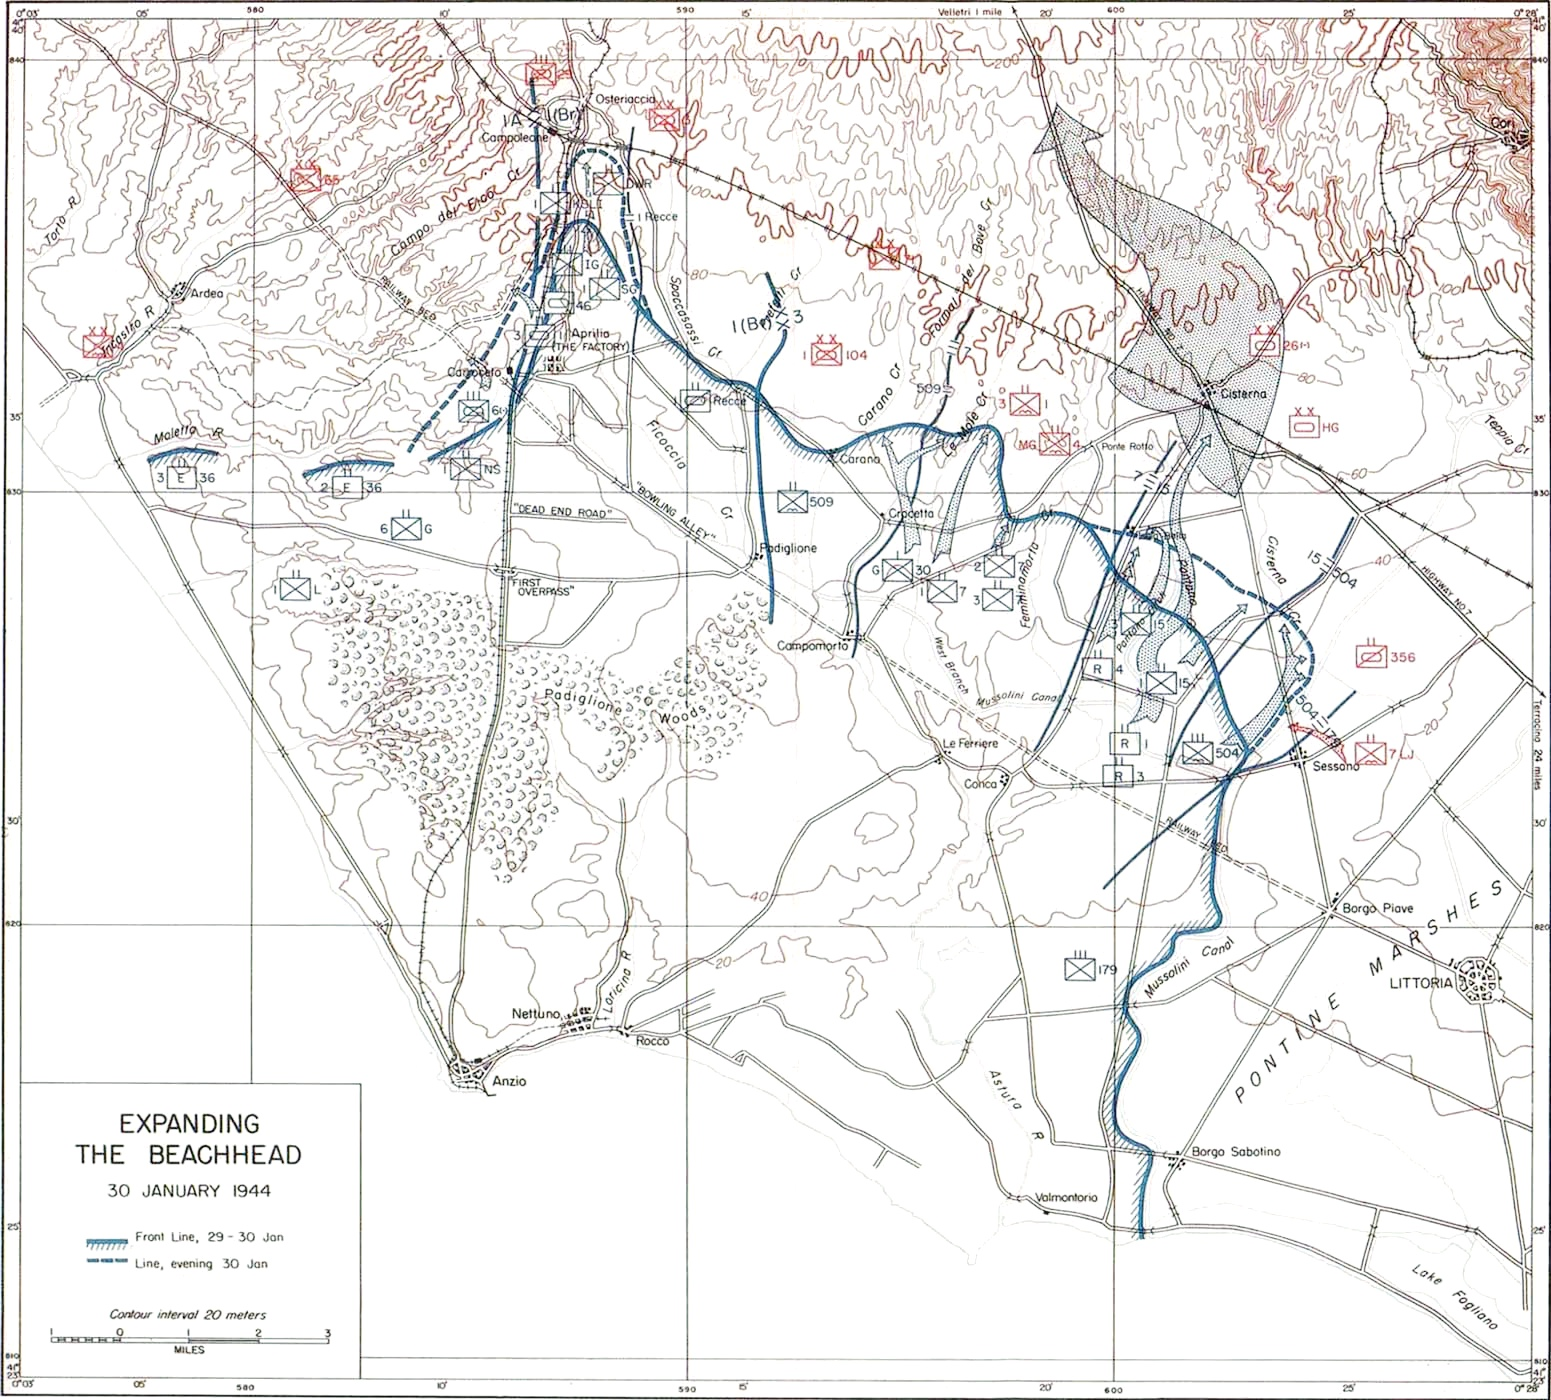 File:Battle of Cisterna Plan.jpg - Wikipedia, the free encyclopedia